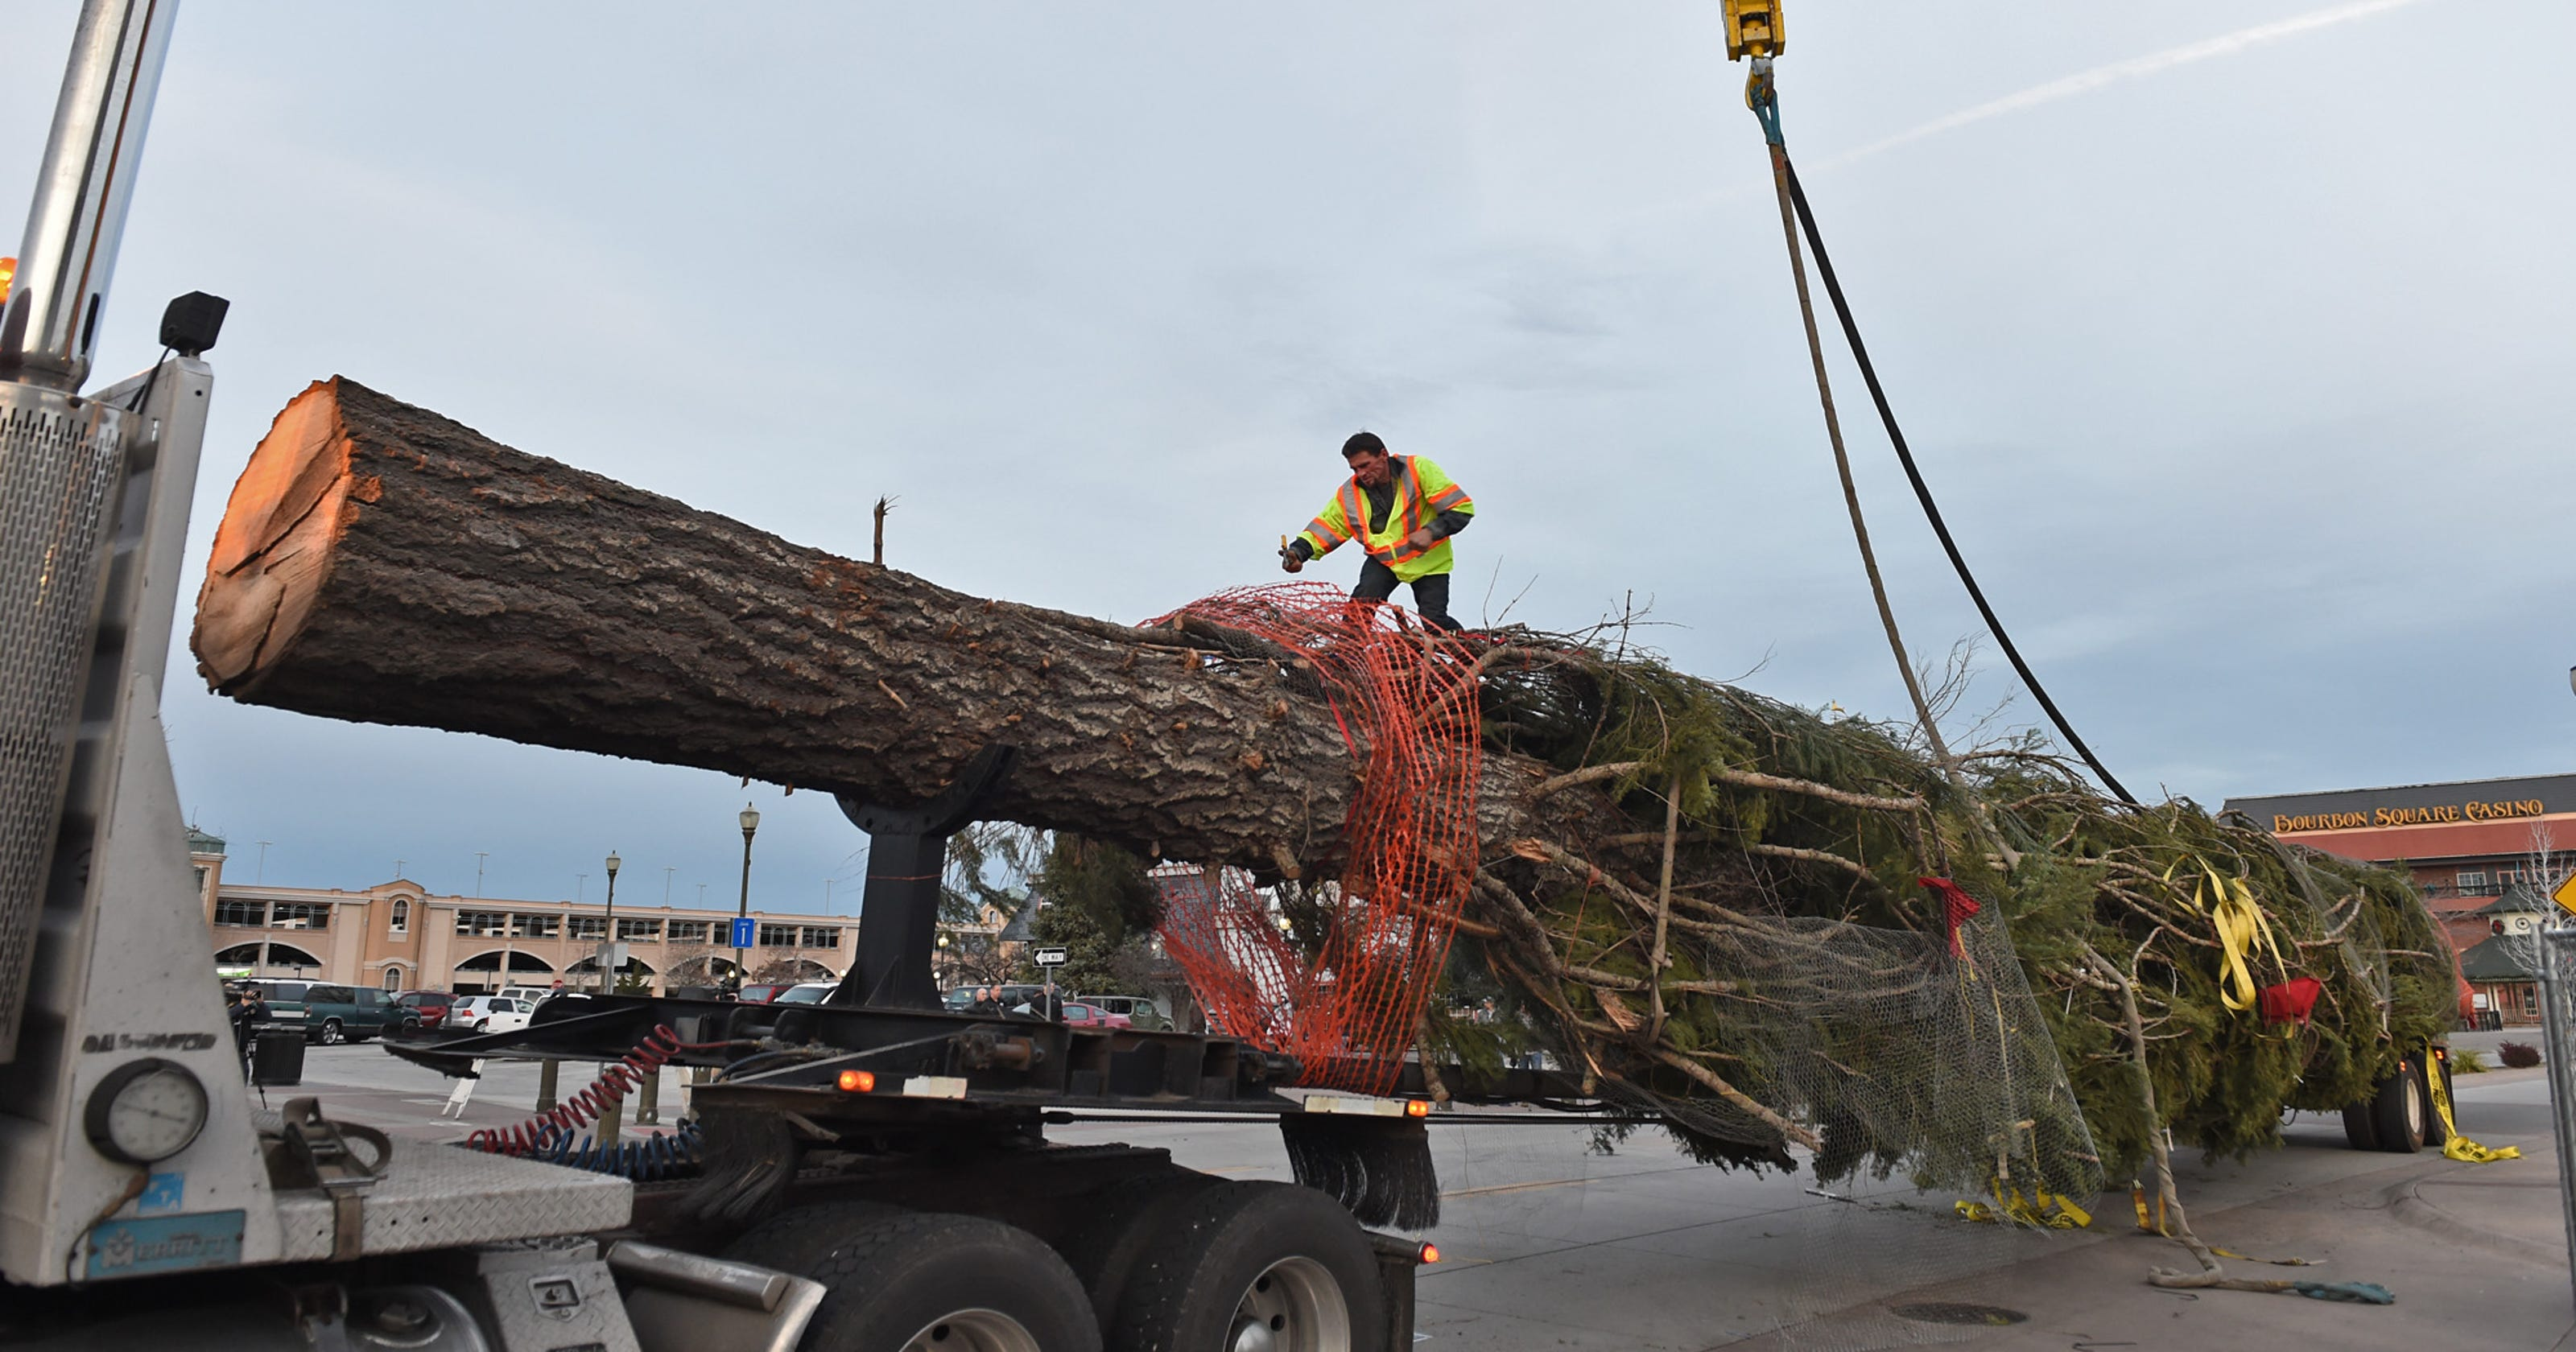 Reno Casino's Tallest Christmas Tree Cut Down By LA Outlet